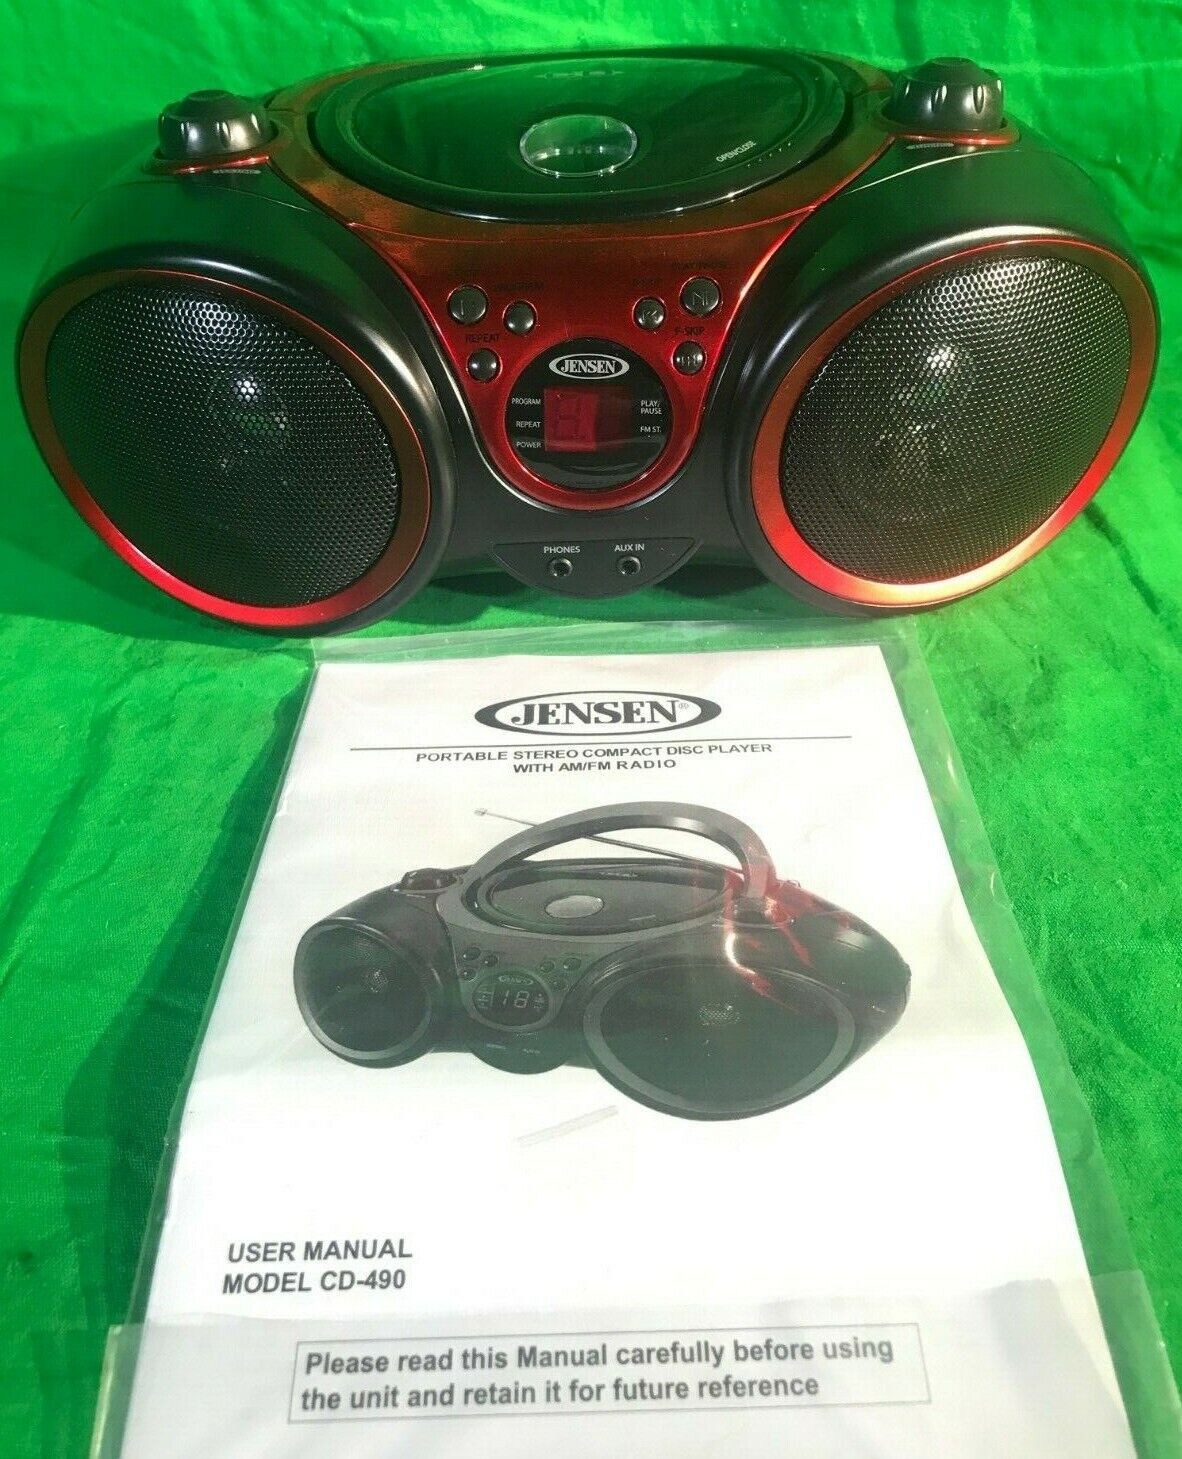 JENSEN CD-490 Portable Stereo CD Player with AM//FM Radio and Aux Line-In Red